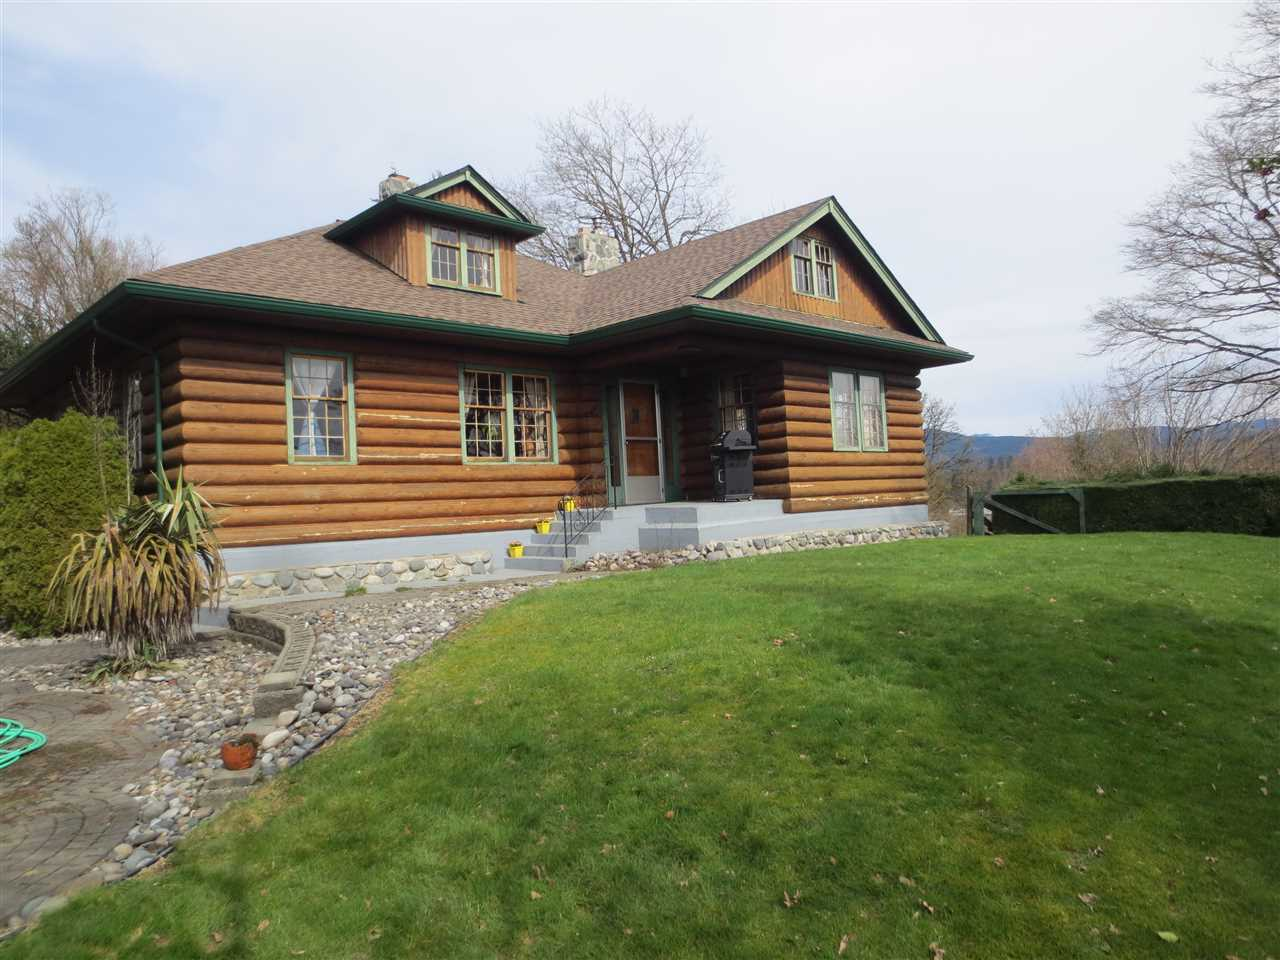 Country living only minutes from the west coast express, mission or maple ridge. Hobby farm, with space enough to raise cows, goats, chickens etc. Bring your horses! Not in the ALR, farm status potential. Live off the land. Mature landscaping with plenty of privacy. The custom crafted log home has unobstructed views of mt. Baker & the Fraser river. Have a coffee on the patio, or cozy up by the fire. Turn the bsmt into the perfect man cave or a play area for the kids. The matching 2 bay garage has a workshop. There is also a garden shed. Close to trails, camping and lakes. Enjoy nature at its best, or take a staycation. The possibilities are endless.